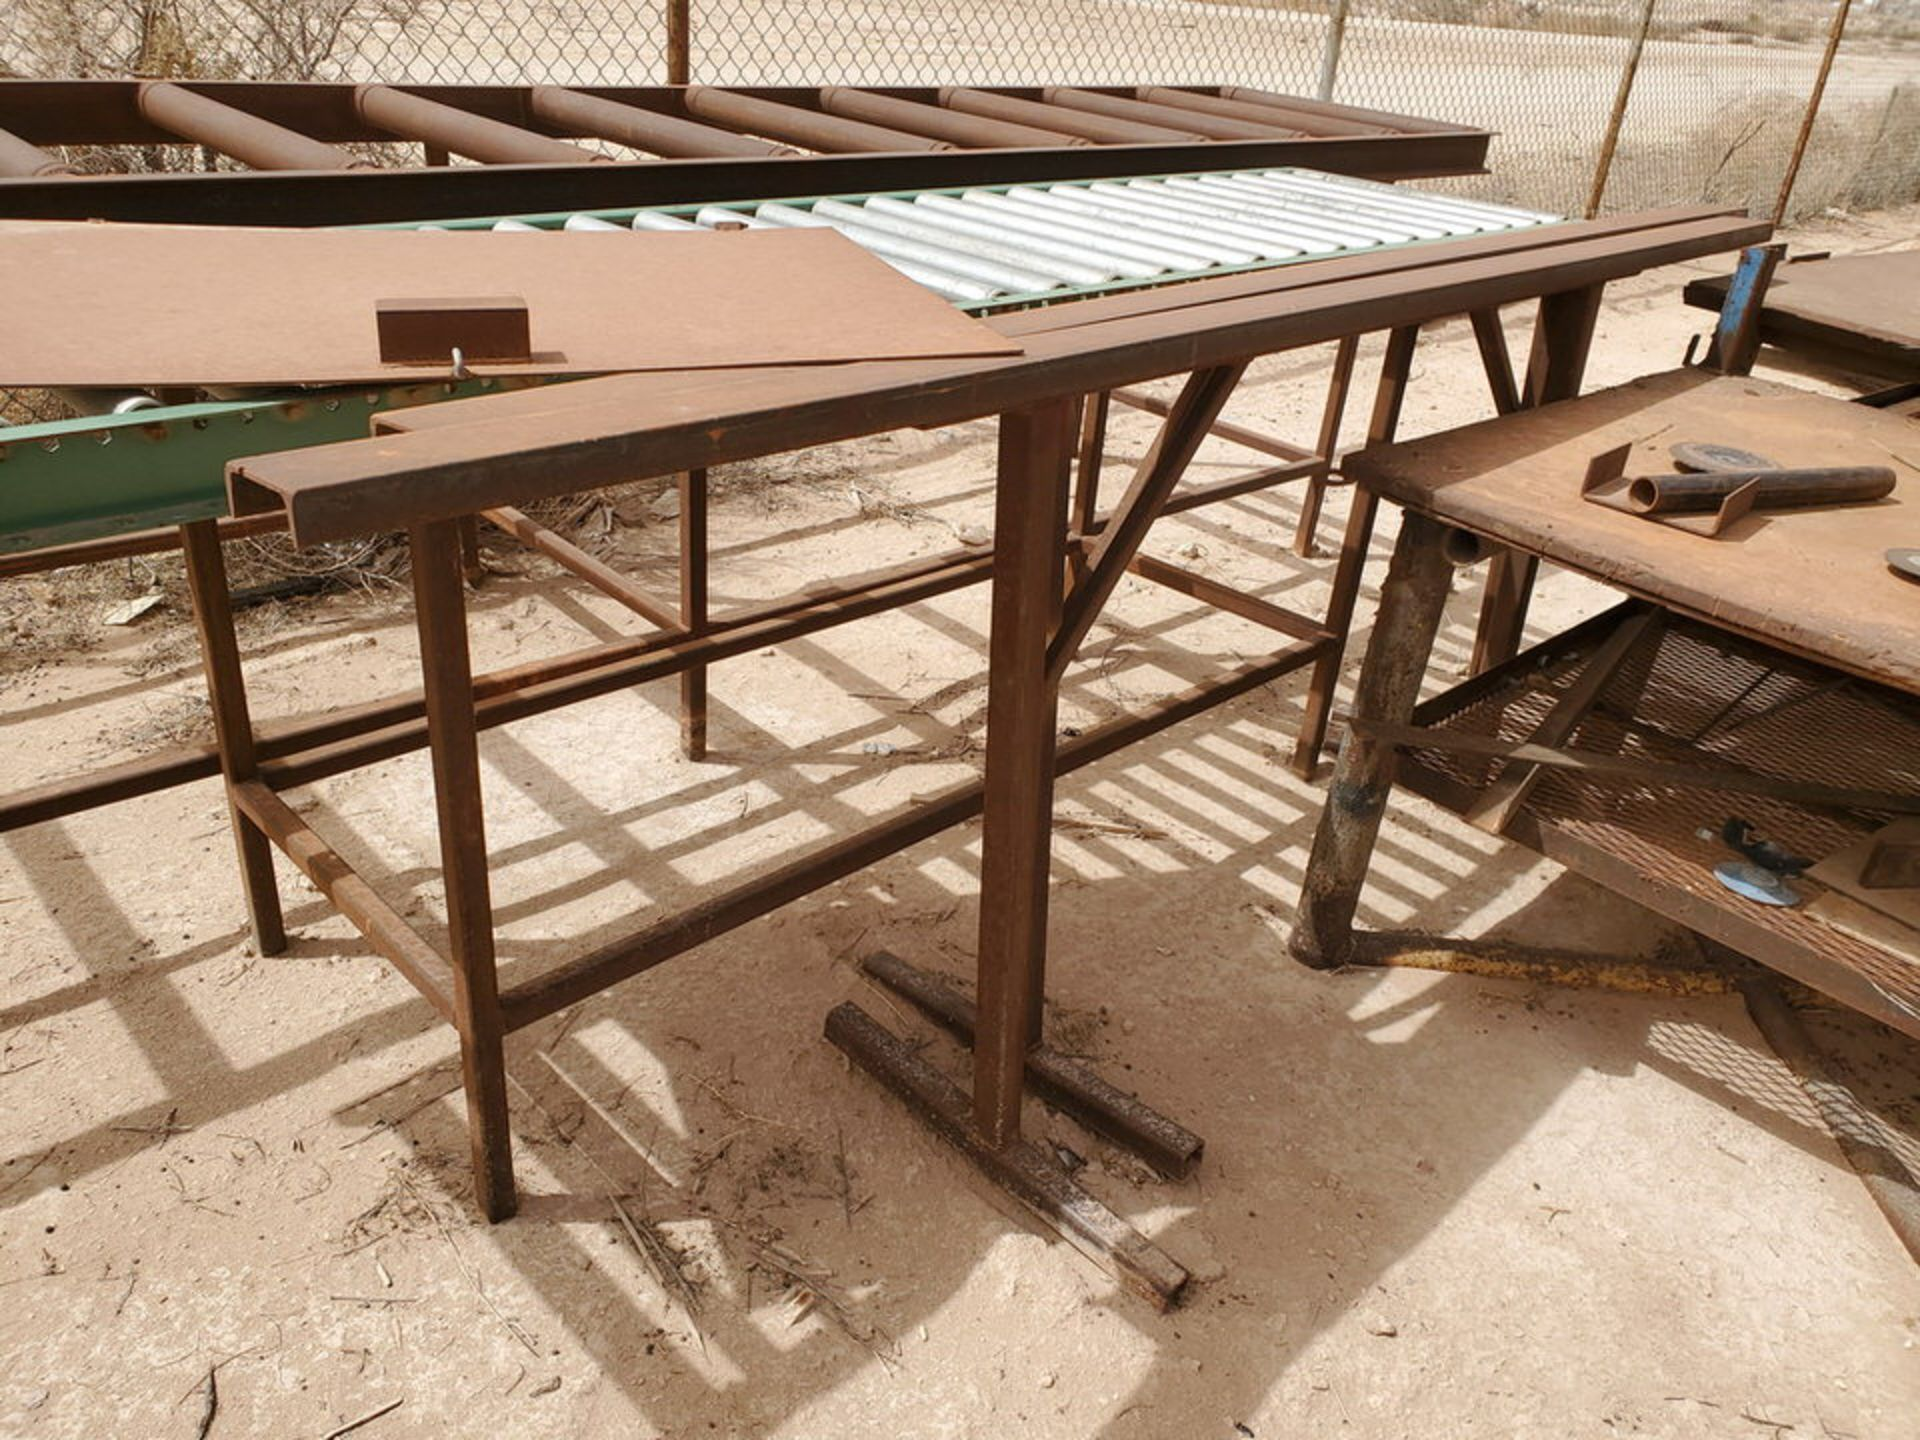 Assorted Matl. To Include But Not Limited To: (3) Welding Tables, Rolling Conveyor, Storage - Image 11 of 11